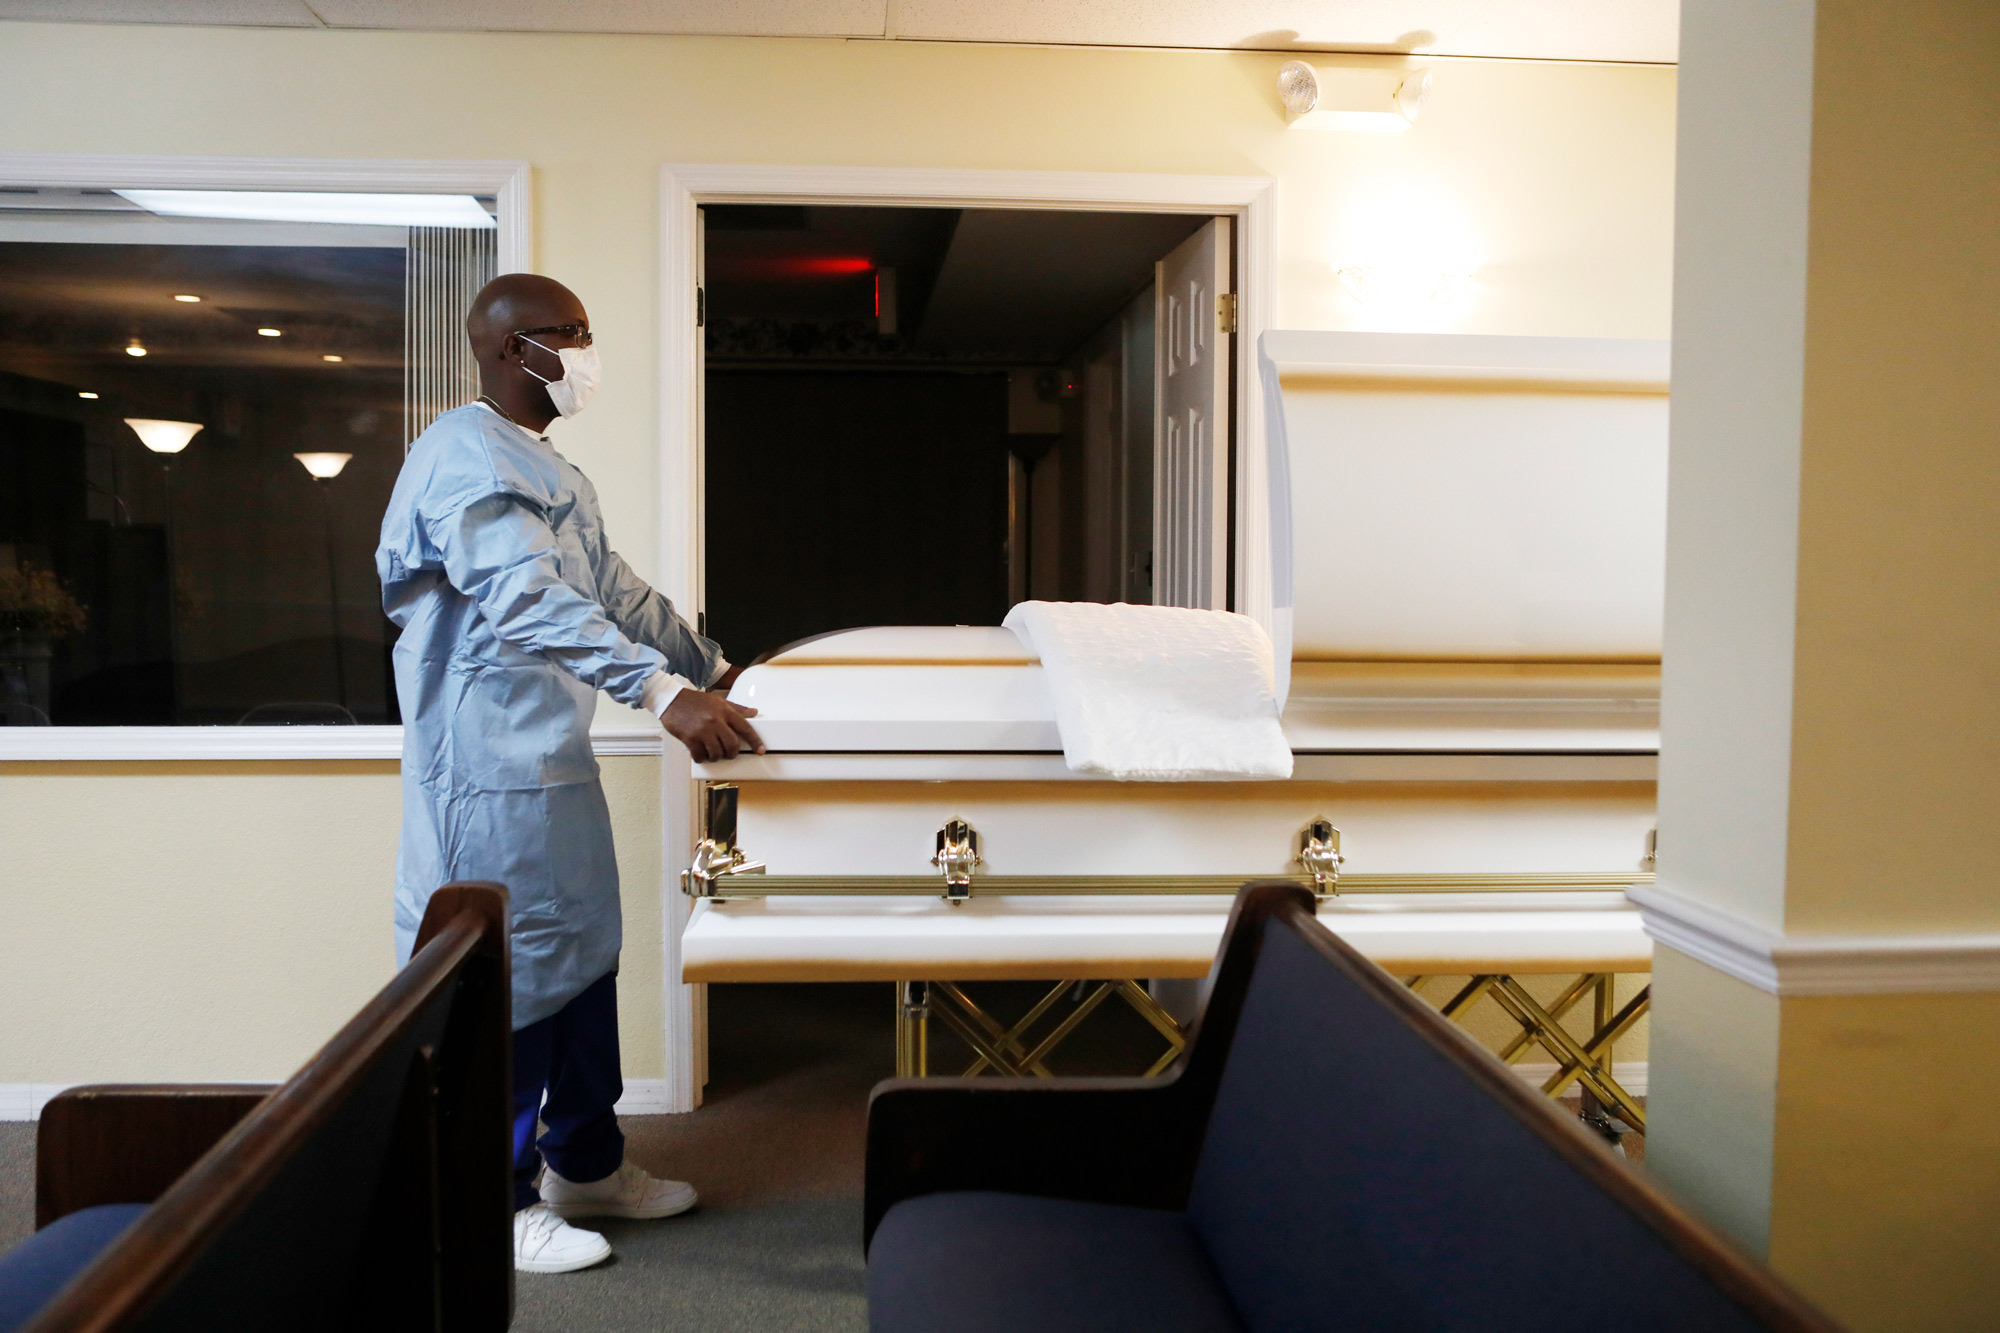 Marlon Warren, a mortician assistant, prepares a funeral service for a man who died of COVID-19 at Ray Williams Funeral Home on August 12 in Tampa, Florida.